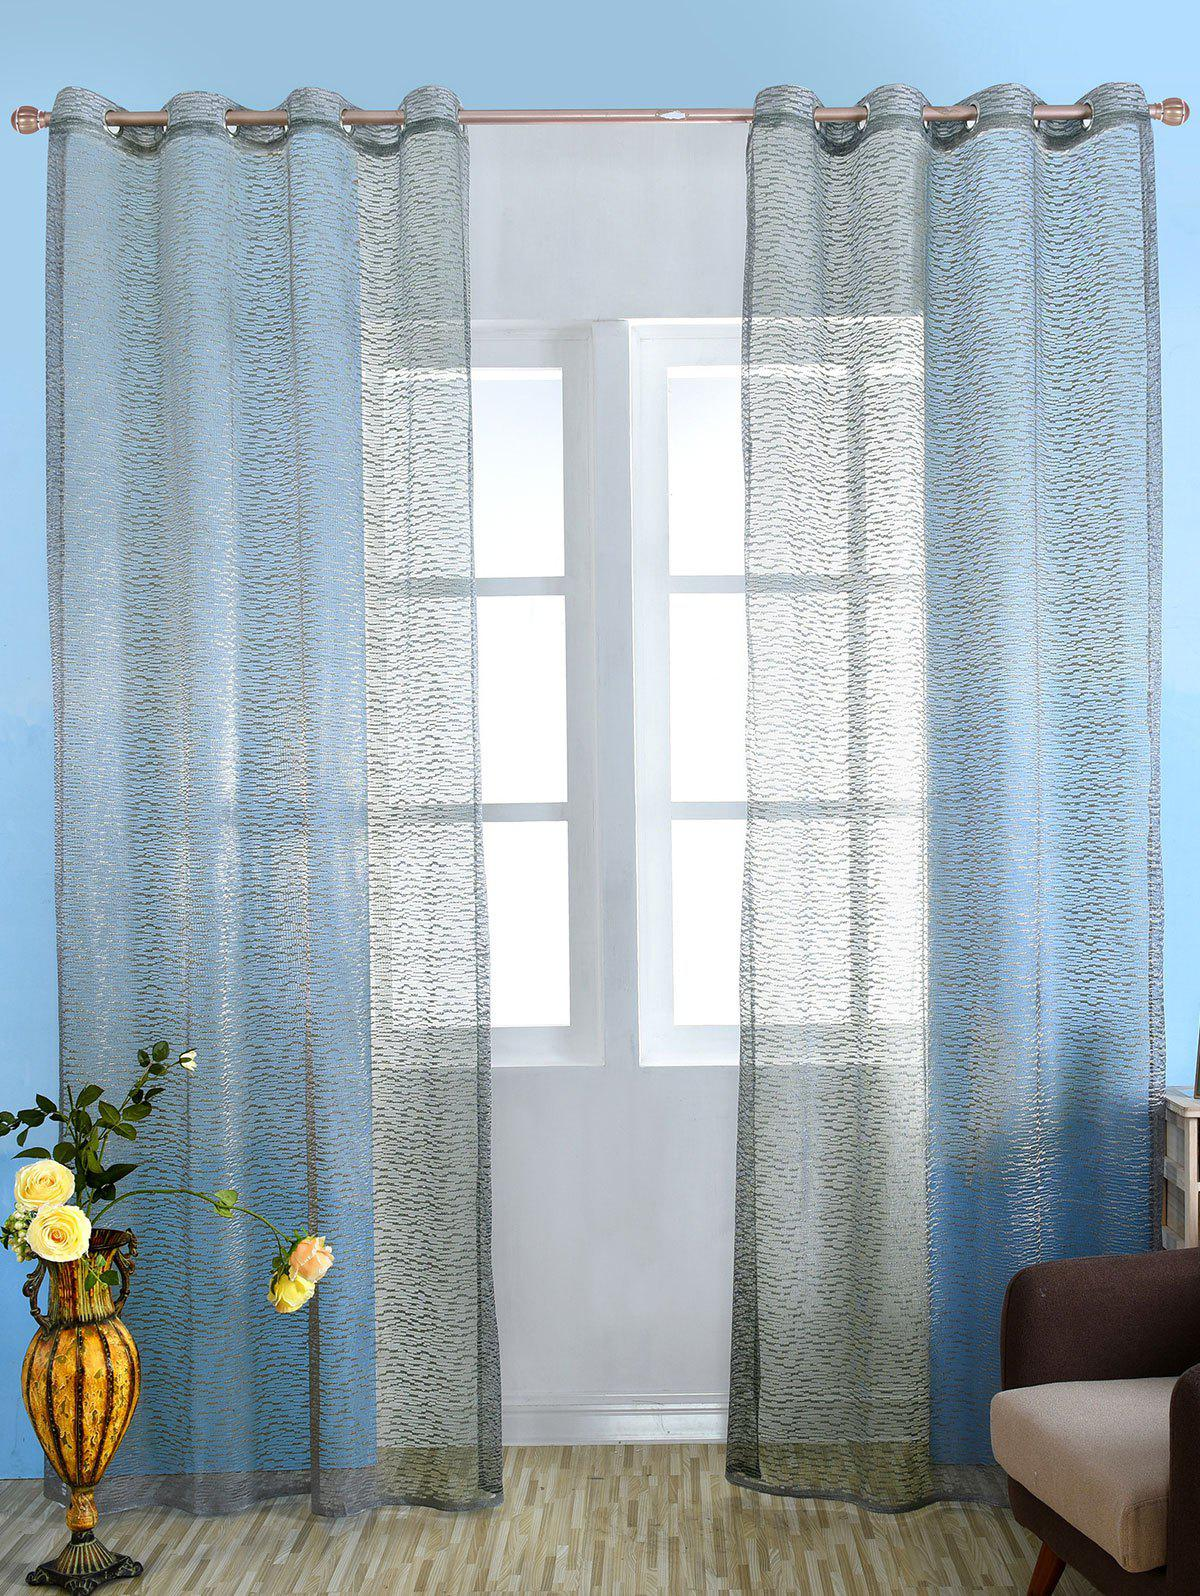 Hot European Style Sheer Tulle Curtain For Living Room